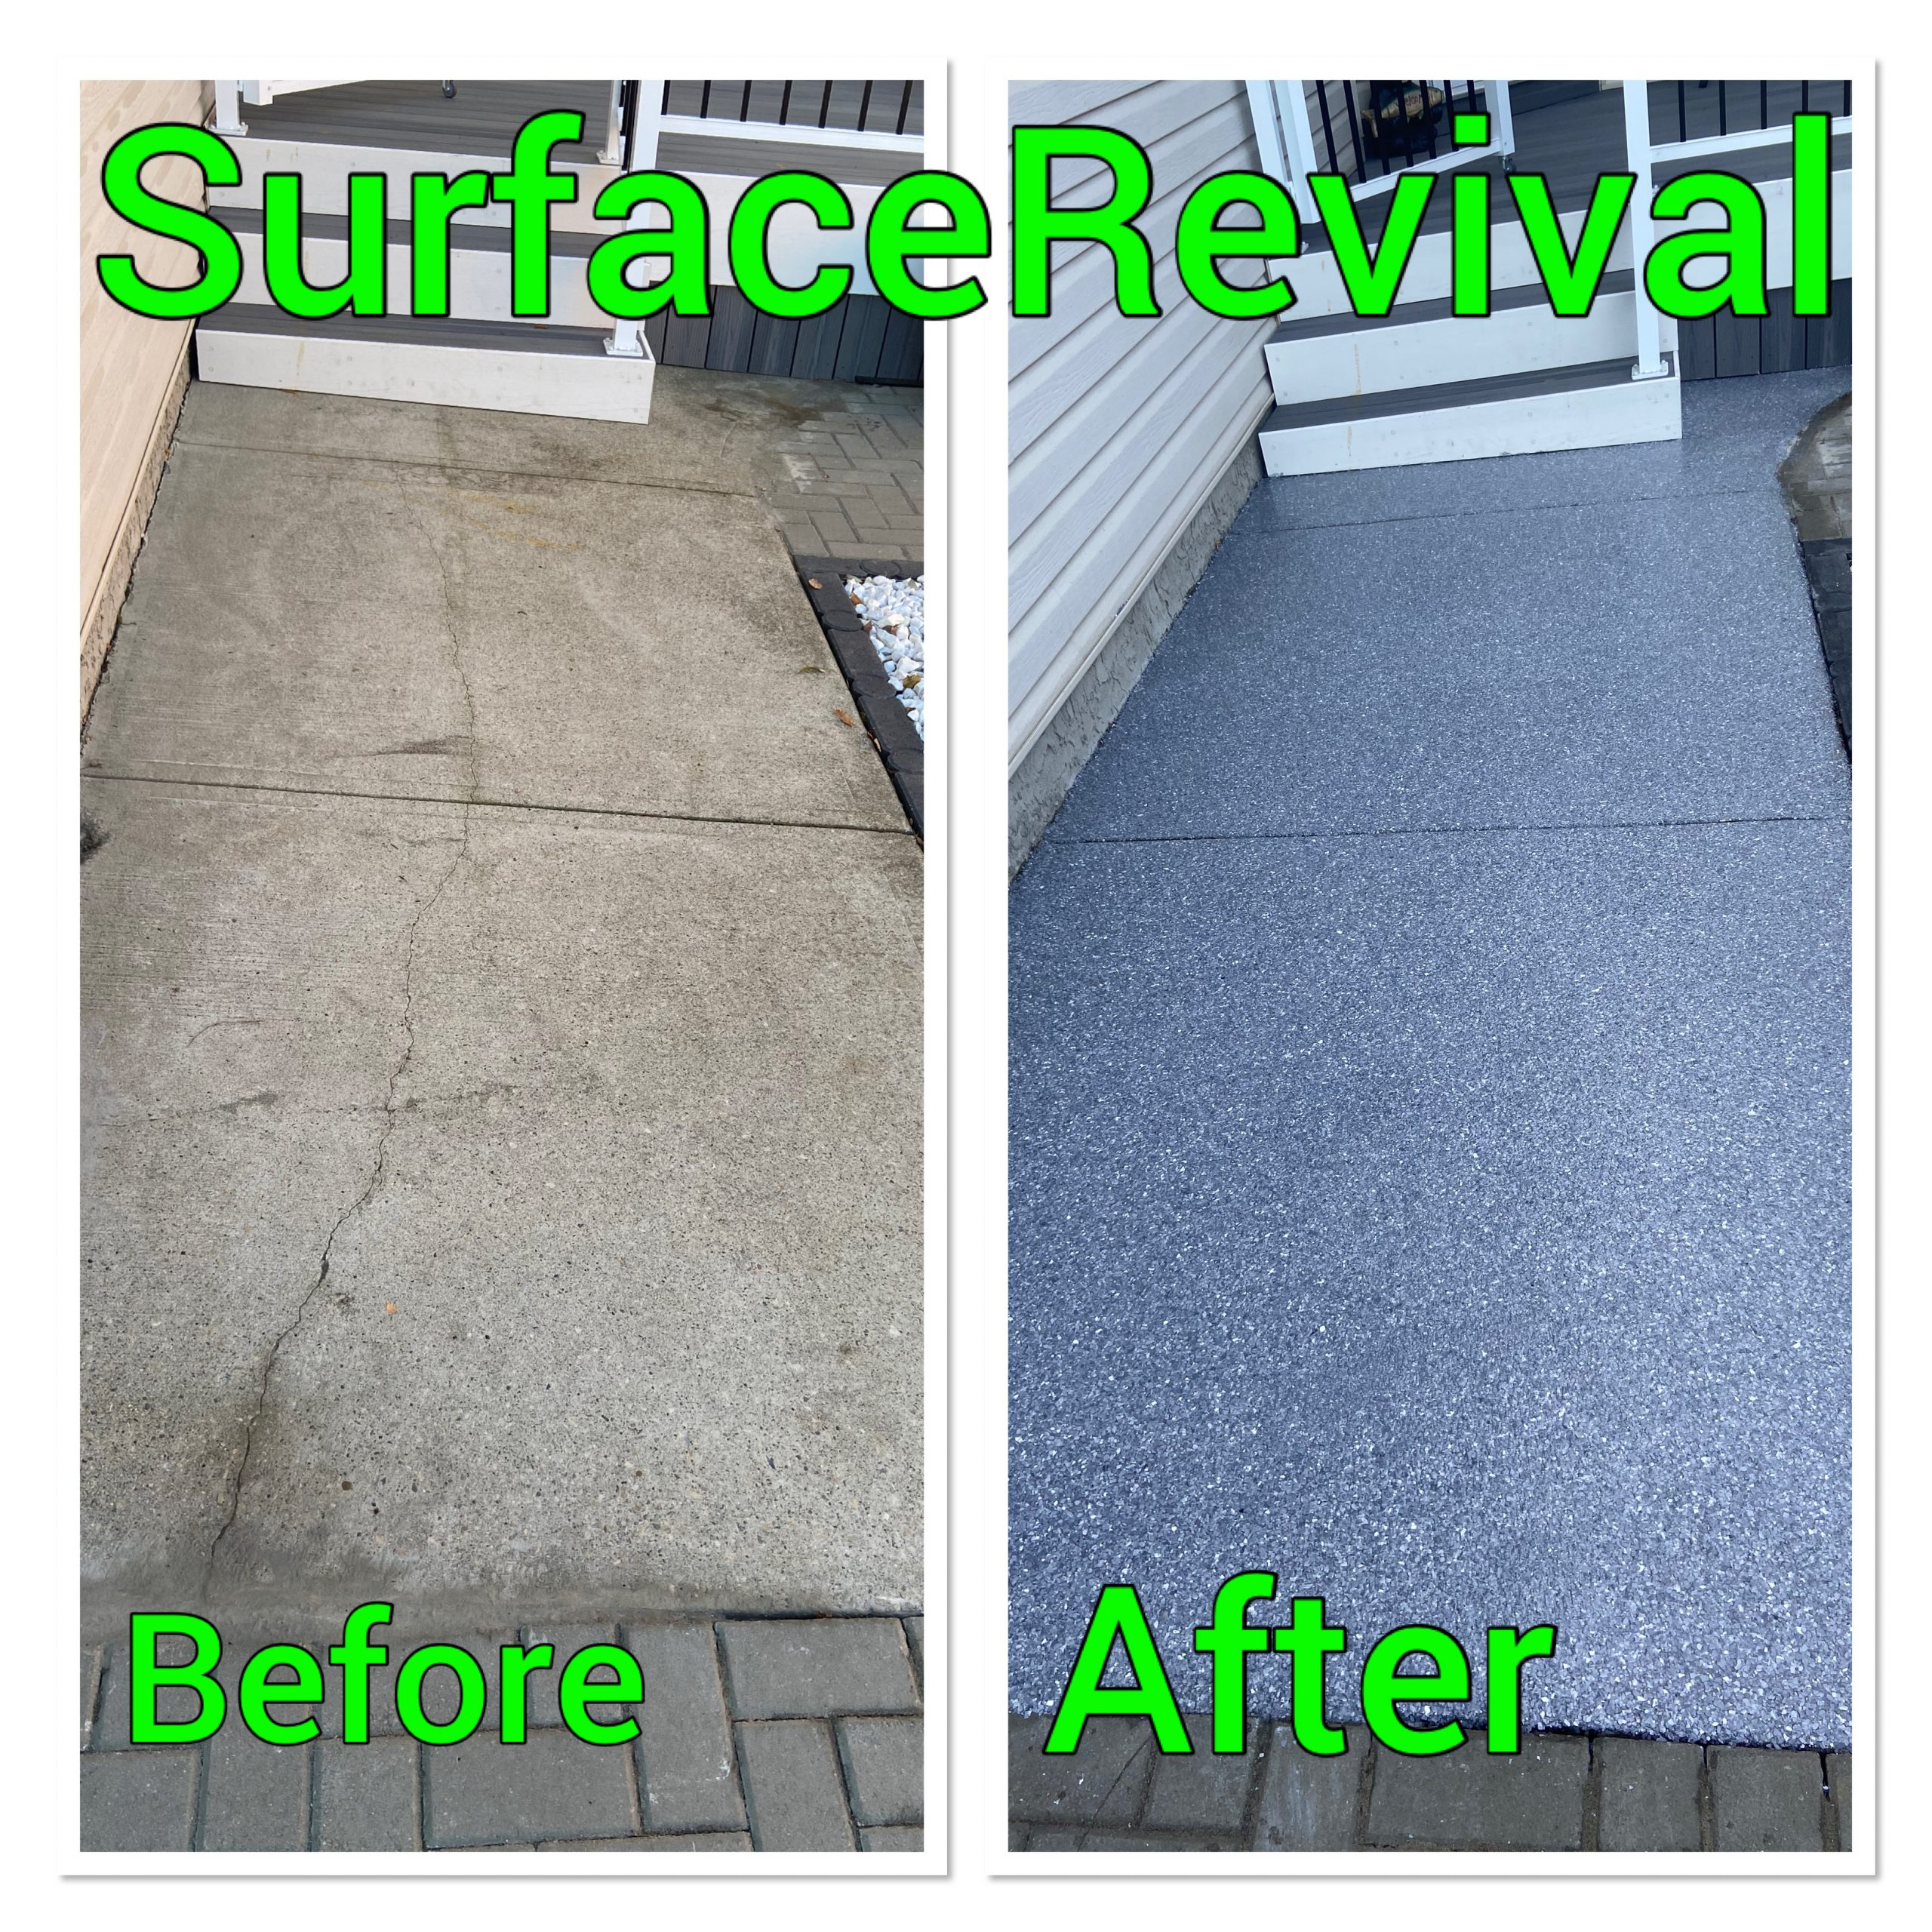 Surface Revival - Concrete Coatings